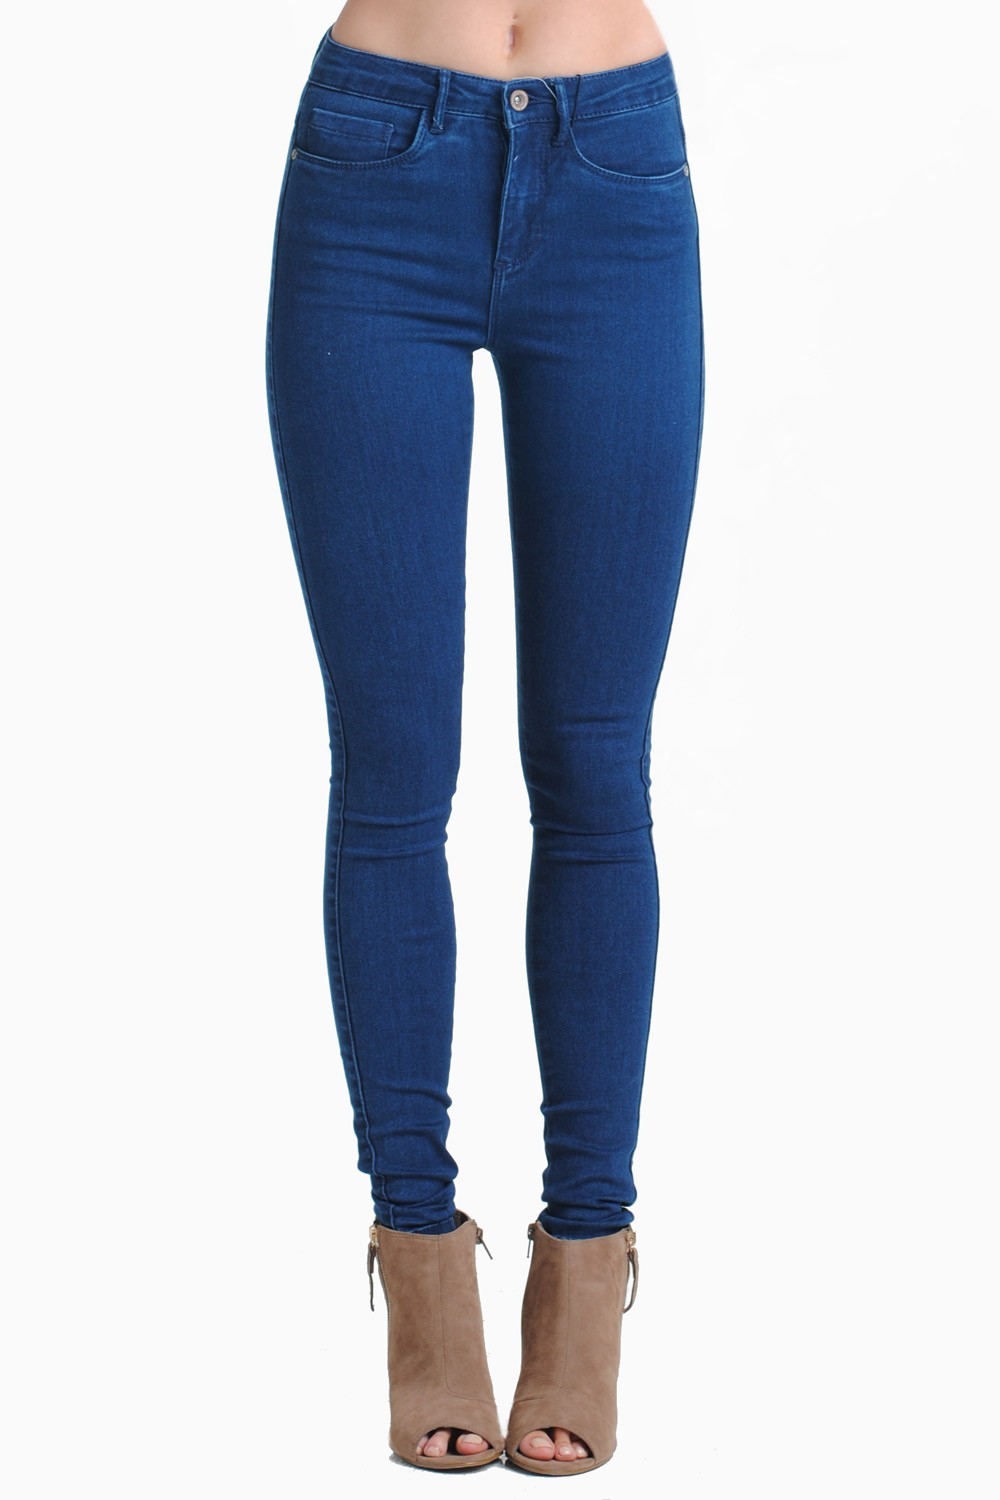 Women's %color %size Jeans Tailored to Fit You